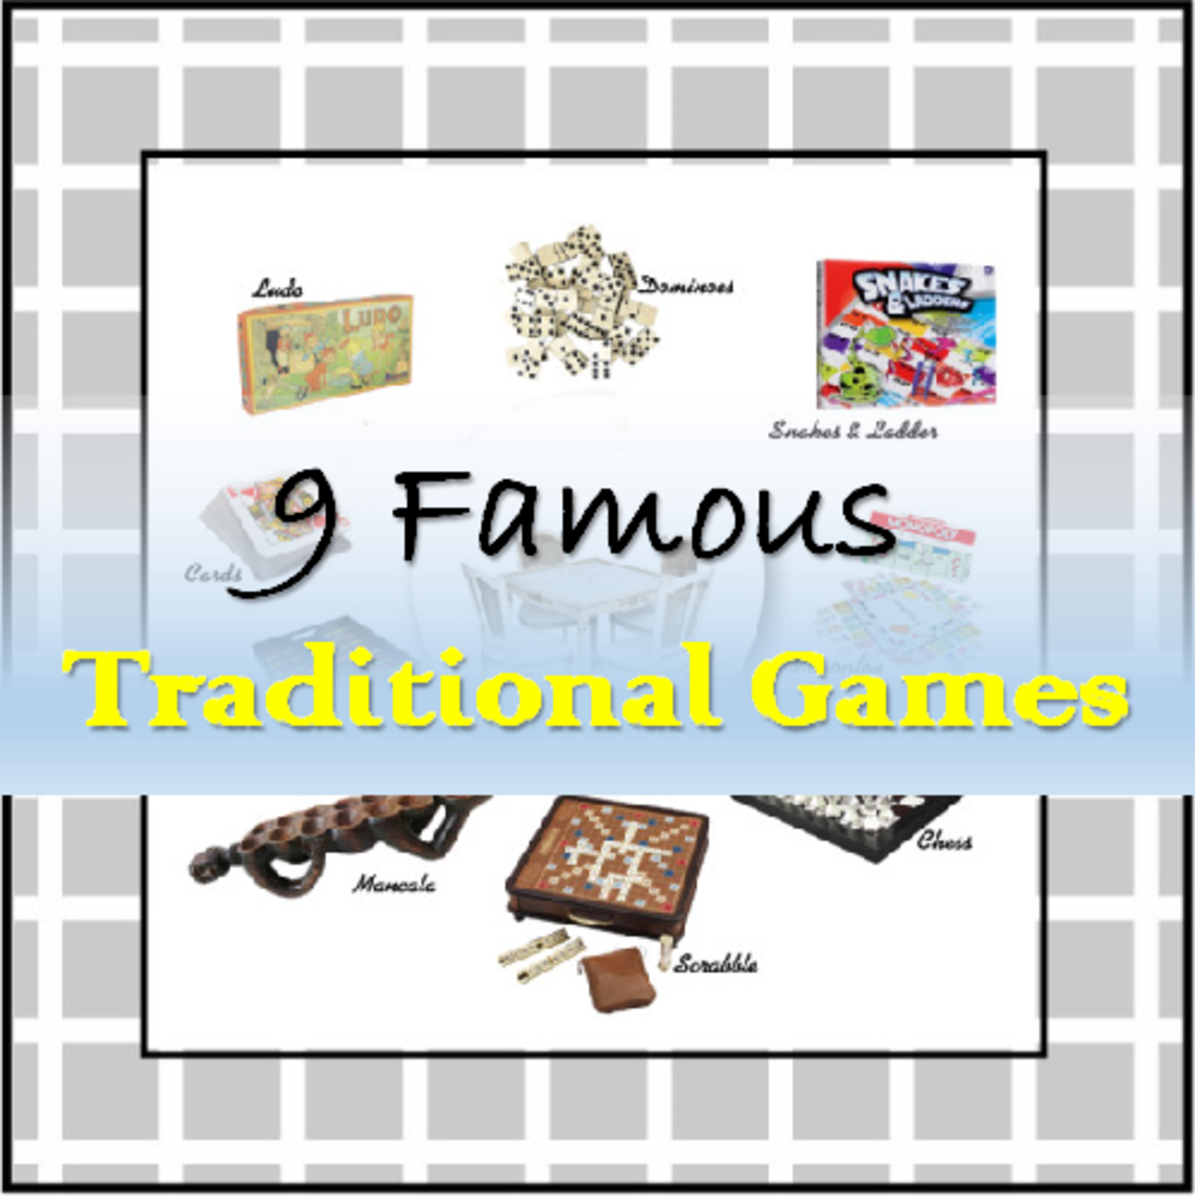 Do you remember these popular traditional games we played way before game technologies and the internet? Well, many people still play them today, preferring to stick to the traditional boards, dice, and cards we used to play them.